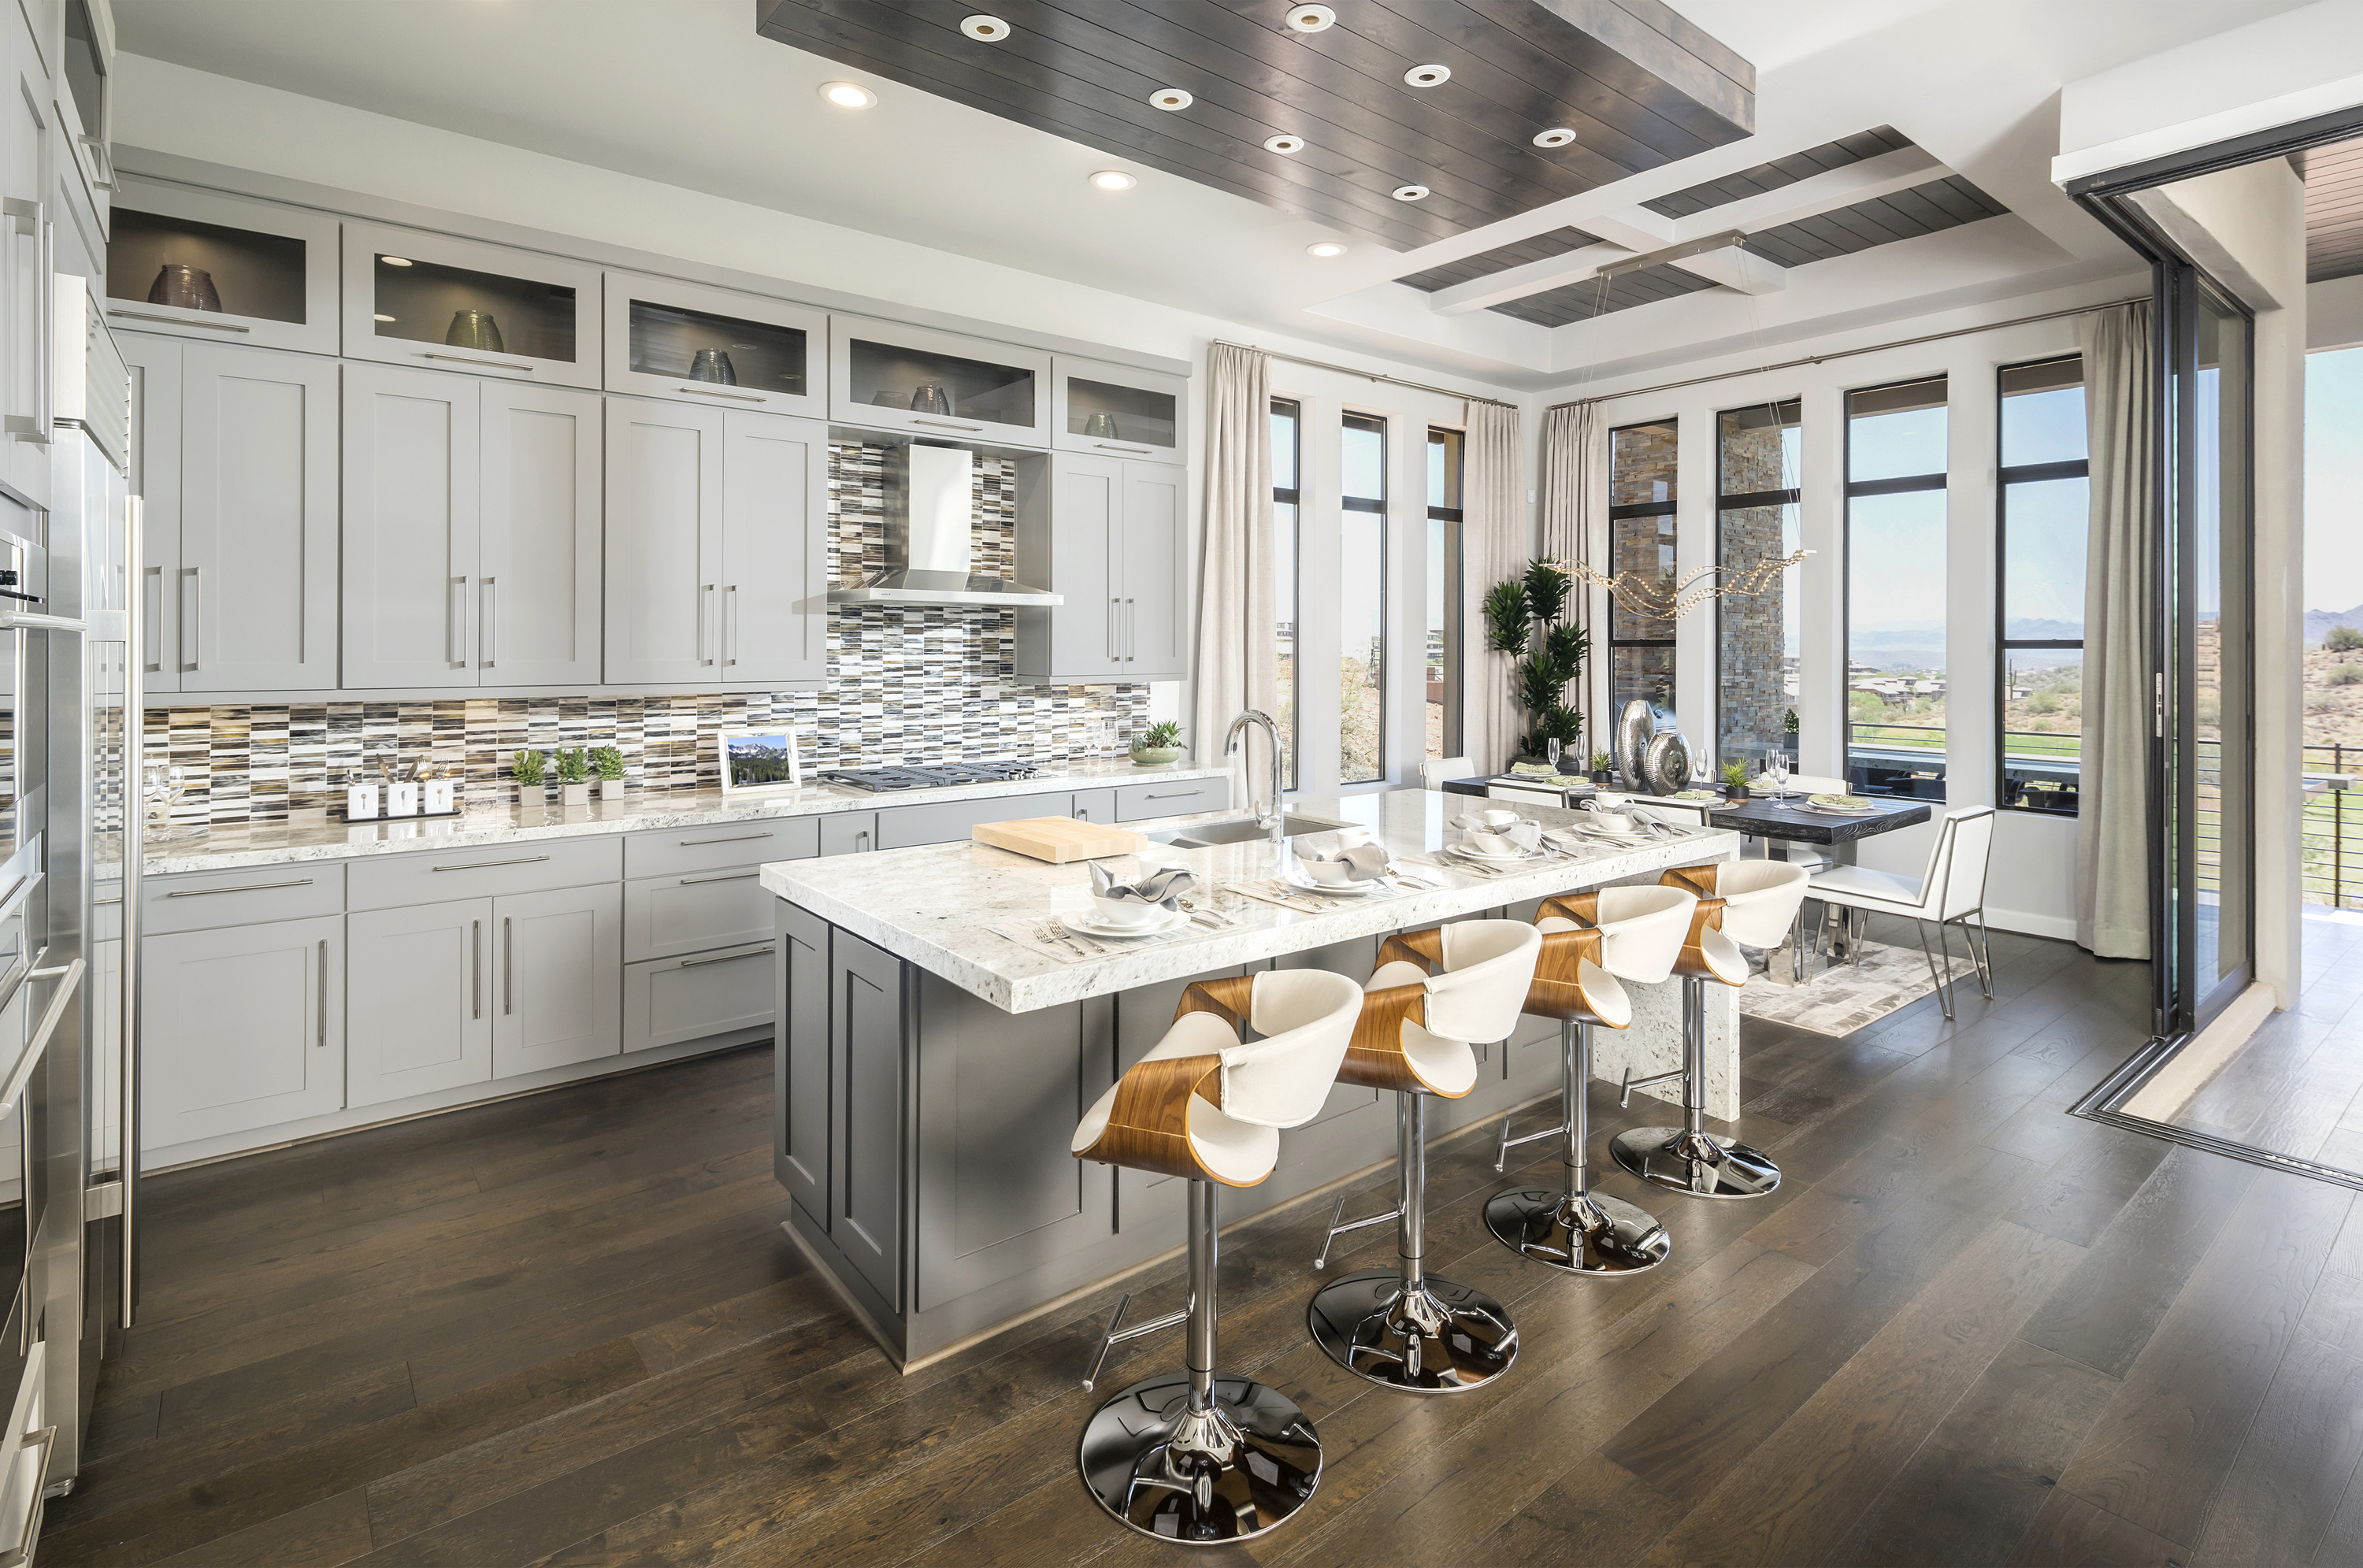 Beautiful kitchen with island seating, side dining area, and metallic accents